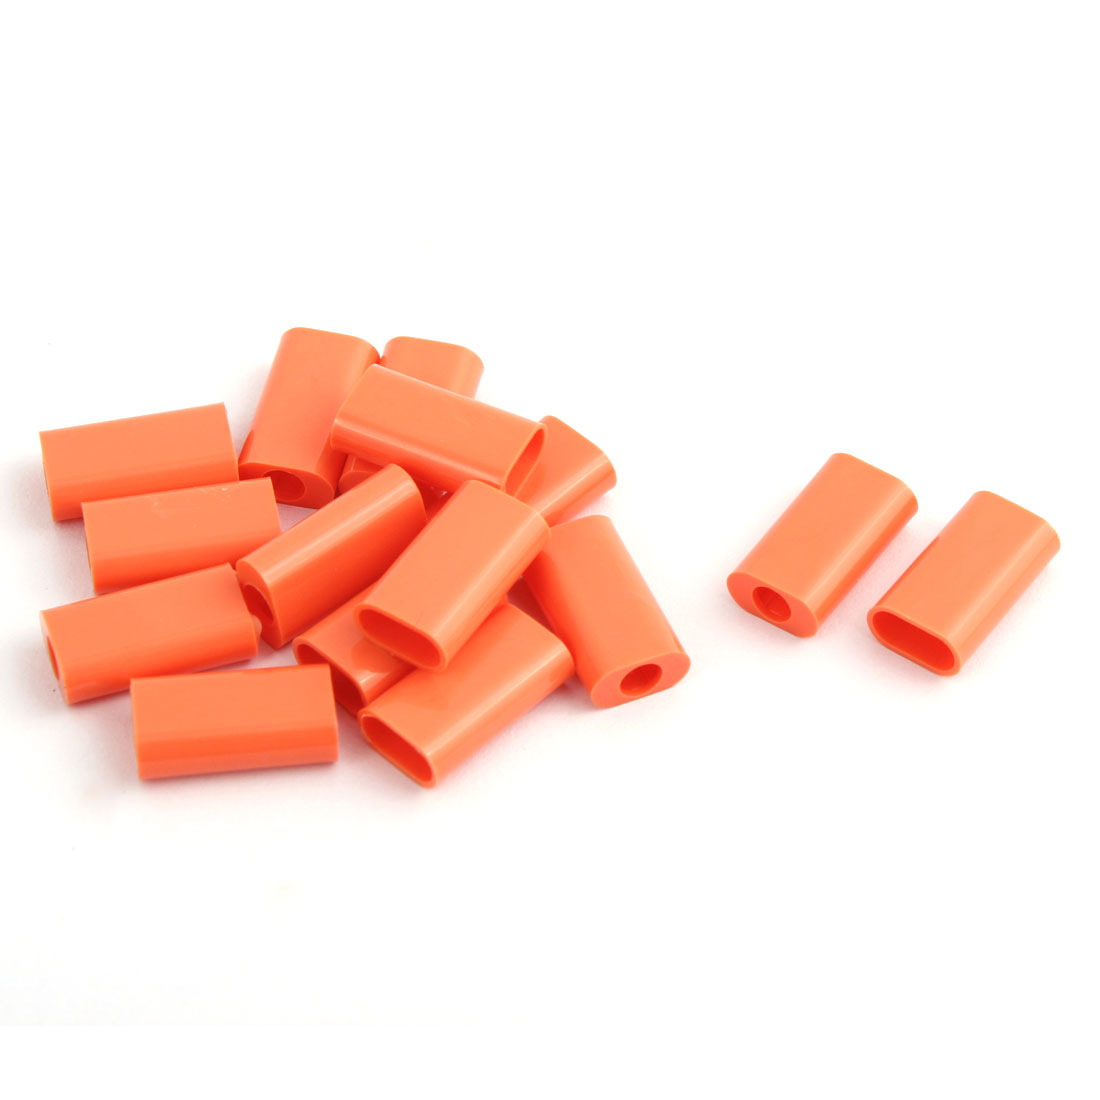 Plastic Jack Port Protective USB Port Connector Shell Parts Salmon Pink 16x9x5mm 15 PCS